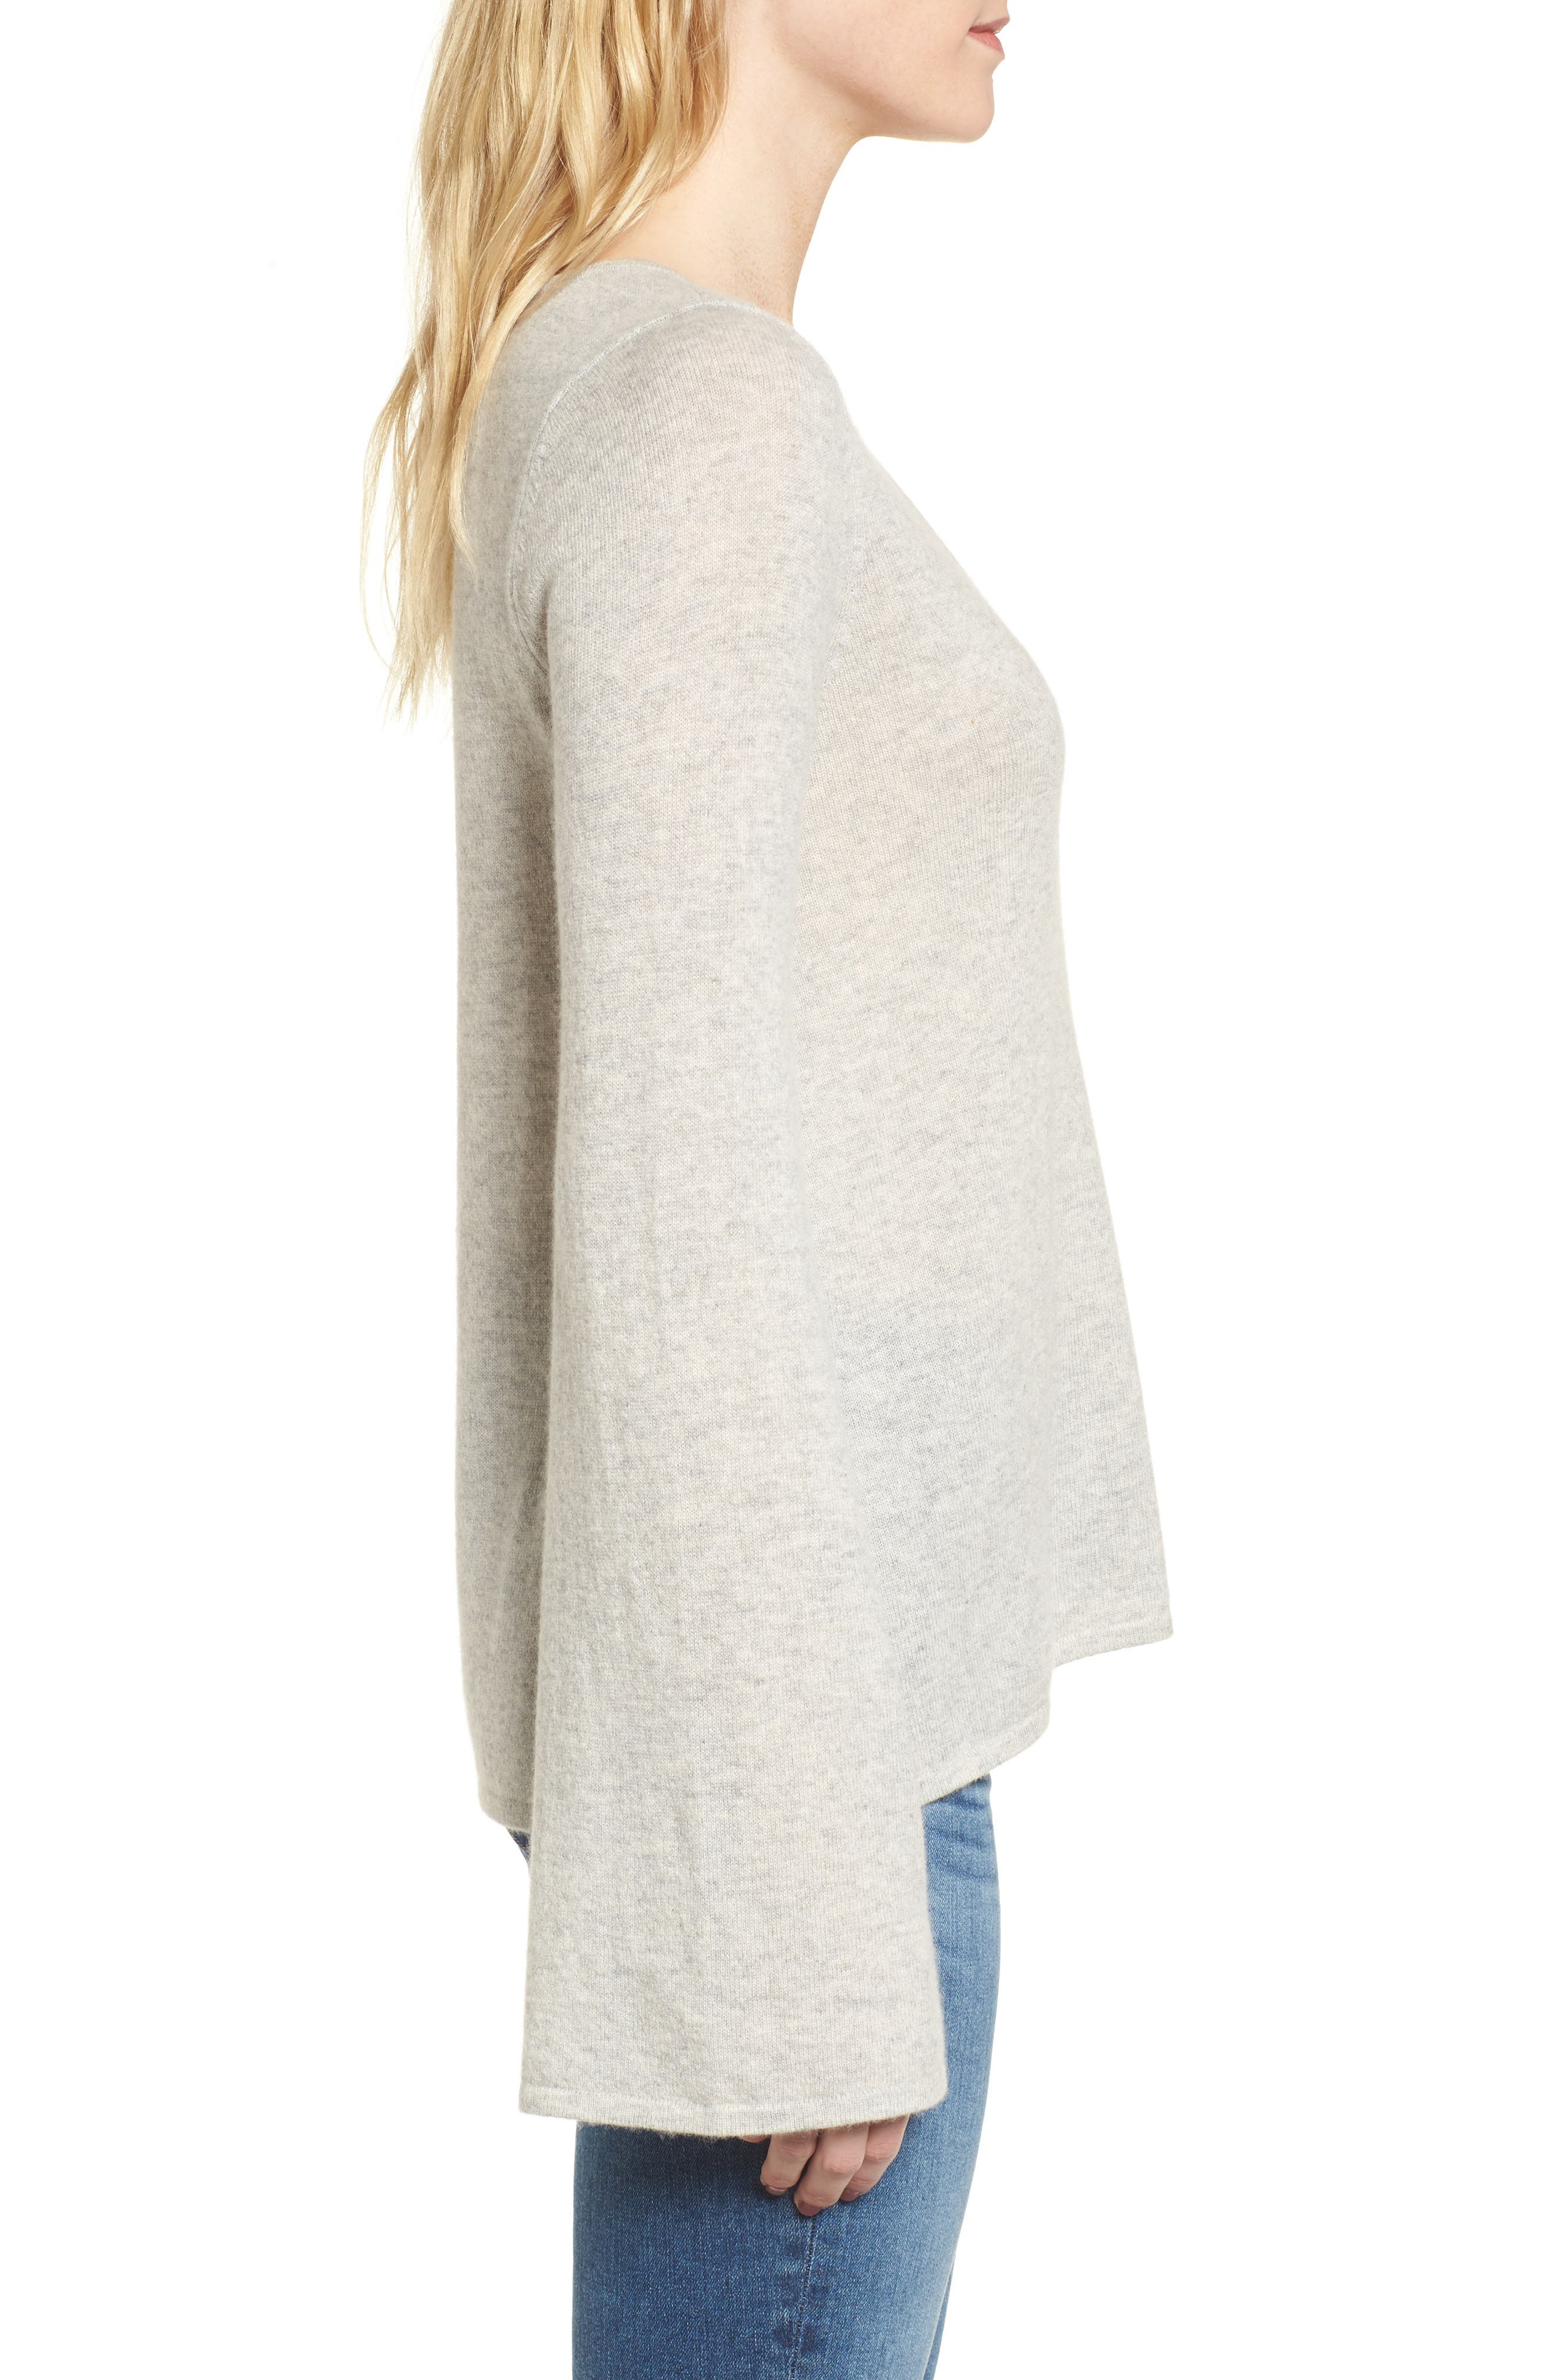 Marylee Cashmere Top,                             Alternate thumbnail 3, color,                             Light Heather Grey